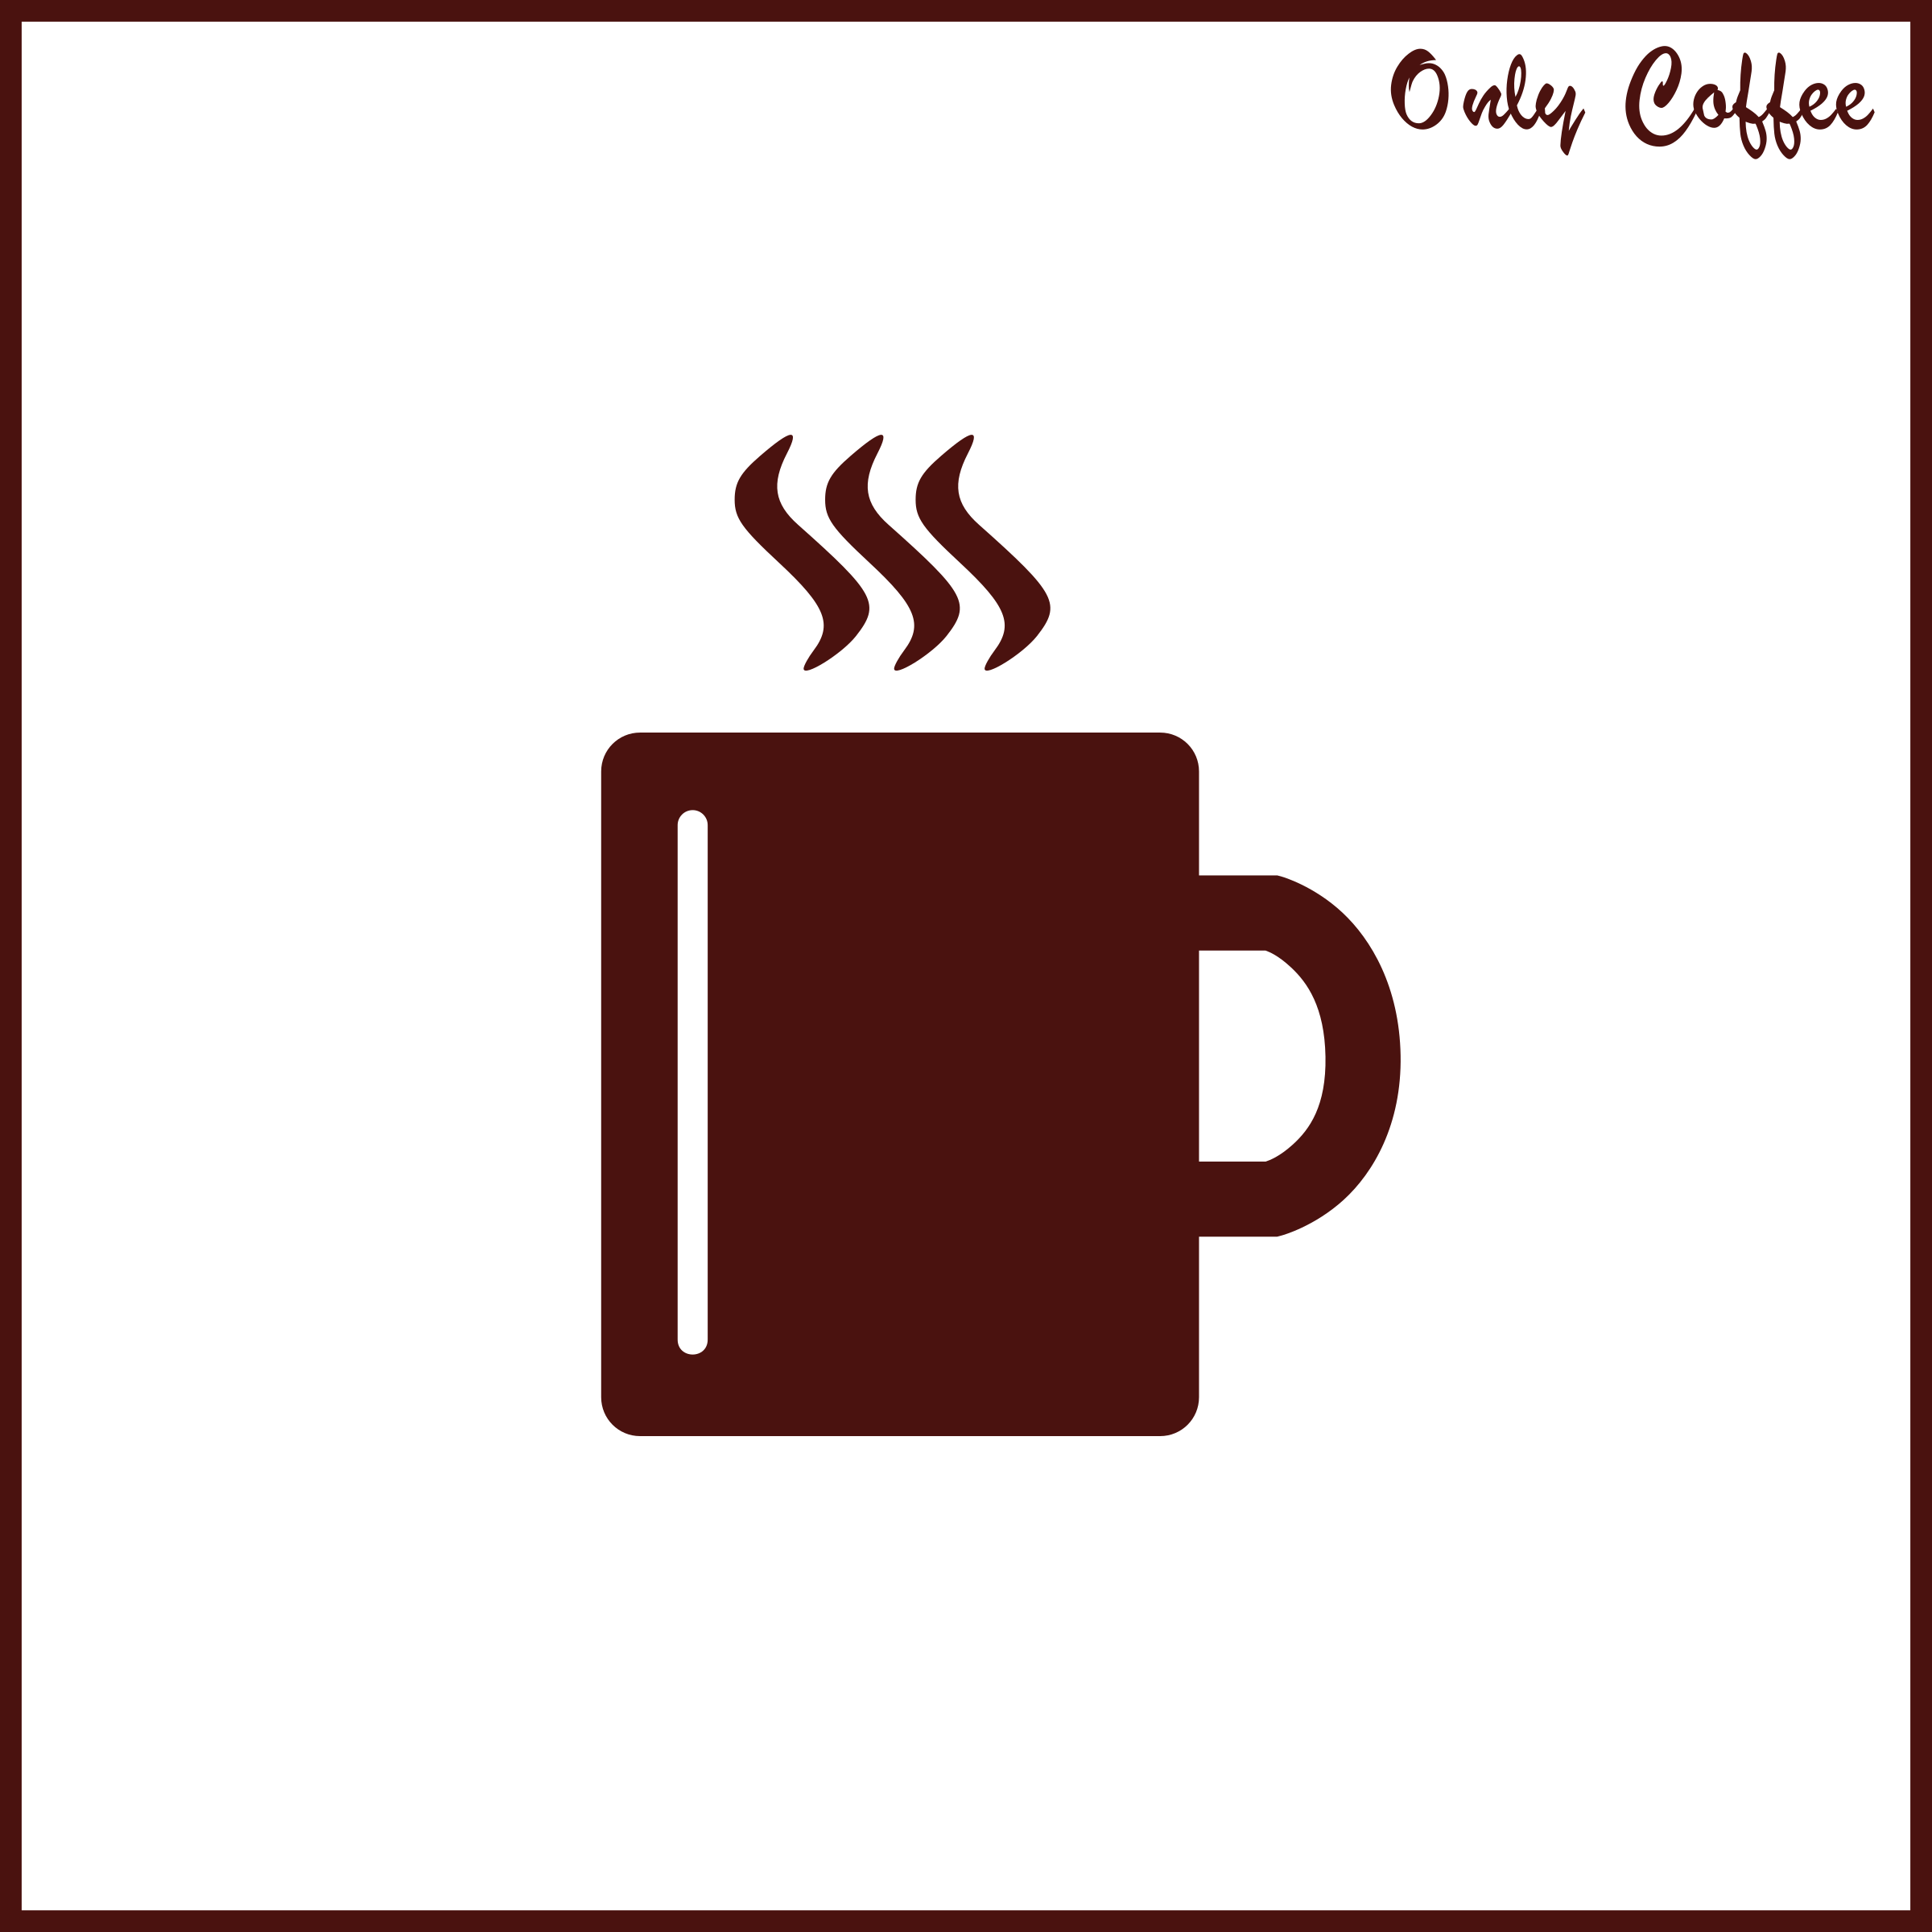 Only Coffee by dordy